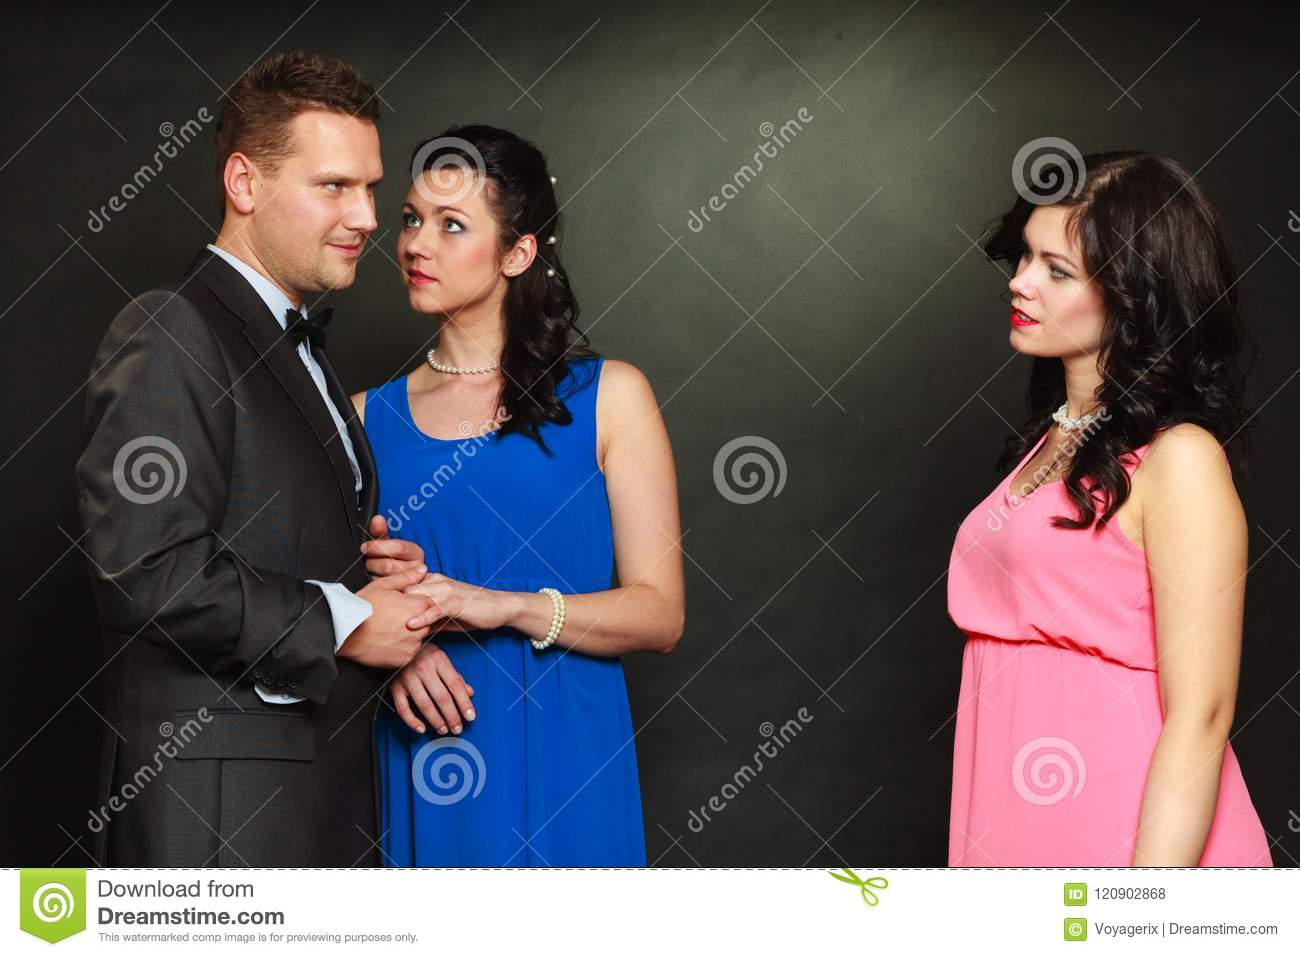 Couple and his jealous woman lover